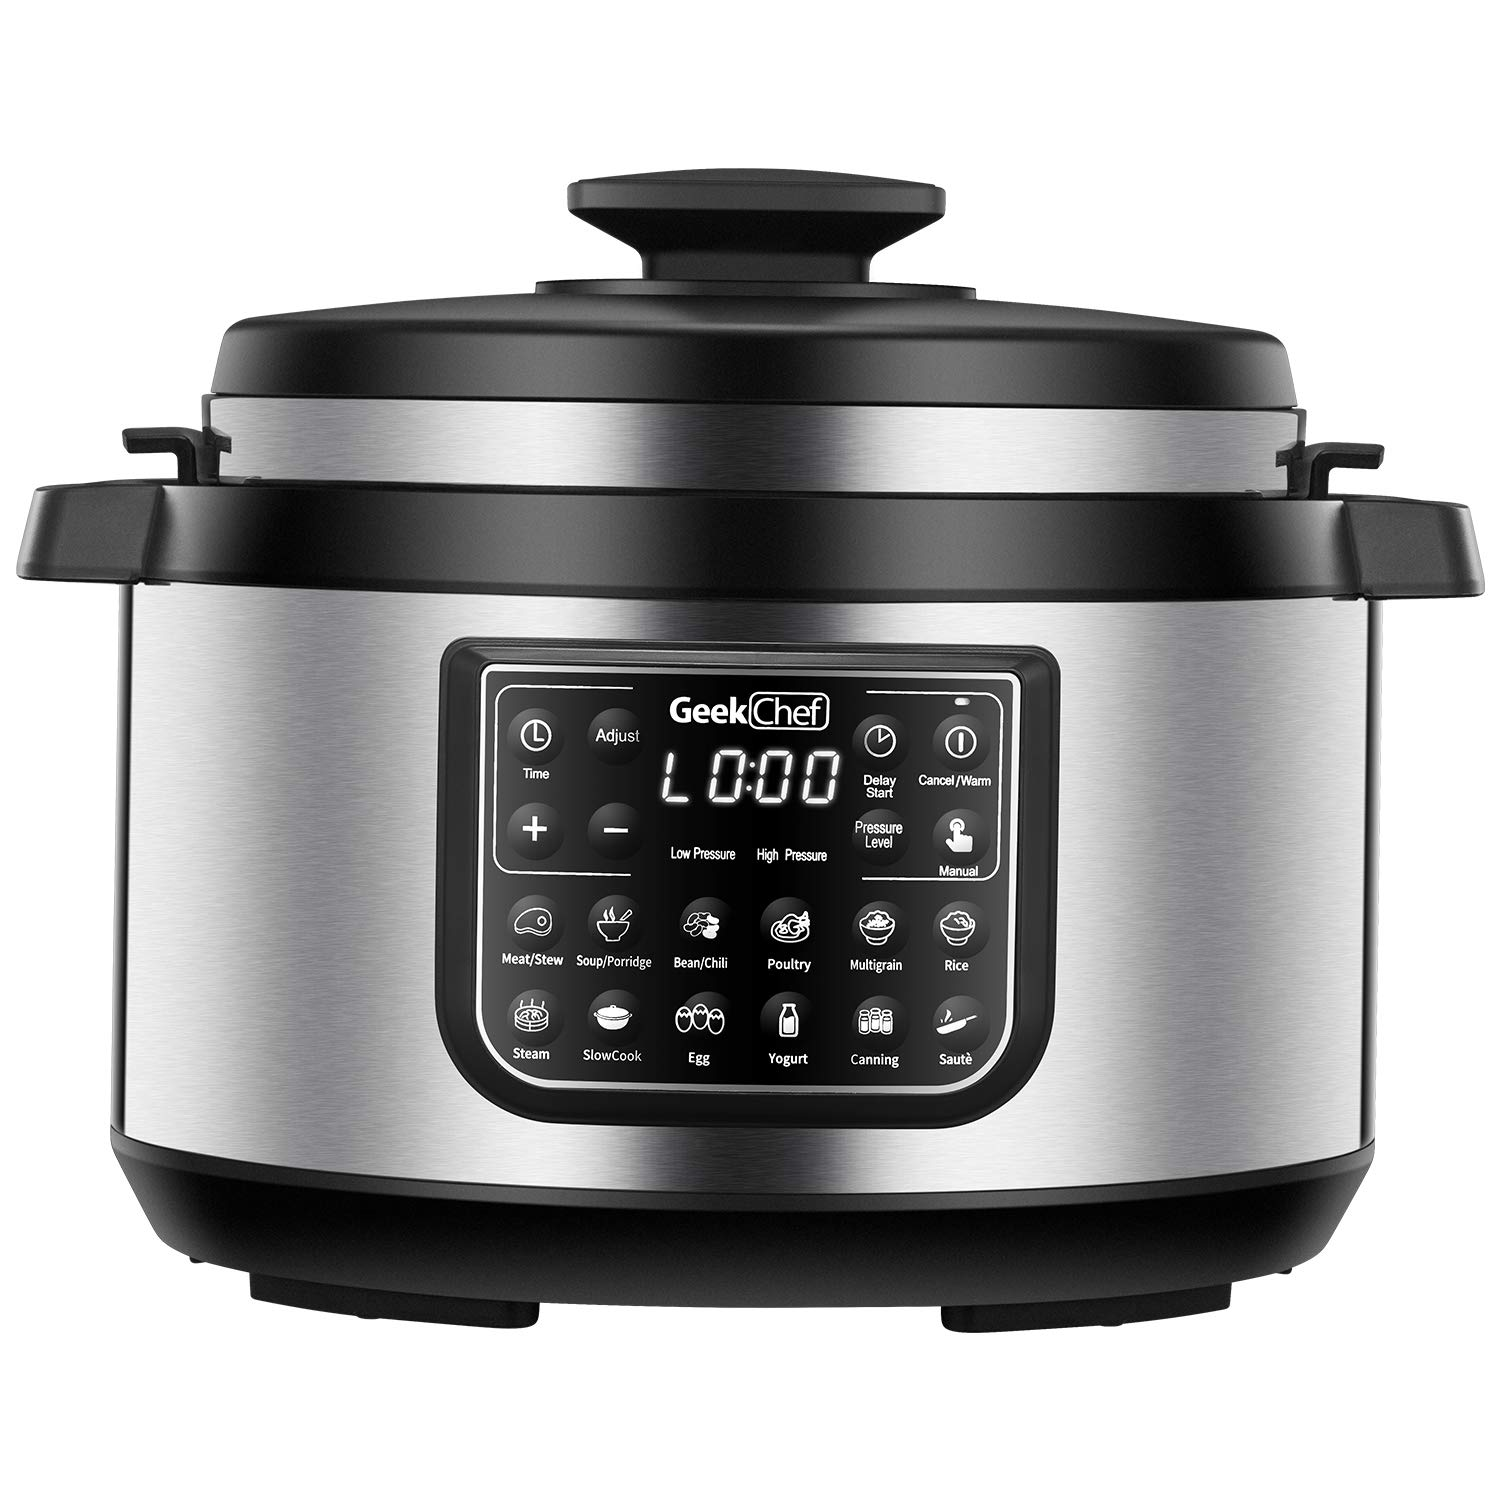 Geek Chef 8 quart OVAL shape multi-functional electric pressure cooker.New technology,designed with non stick oval inner pot, cool-touch handles, EZ-Lock,slower cooker,rice cooker combination